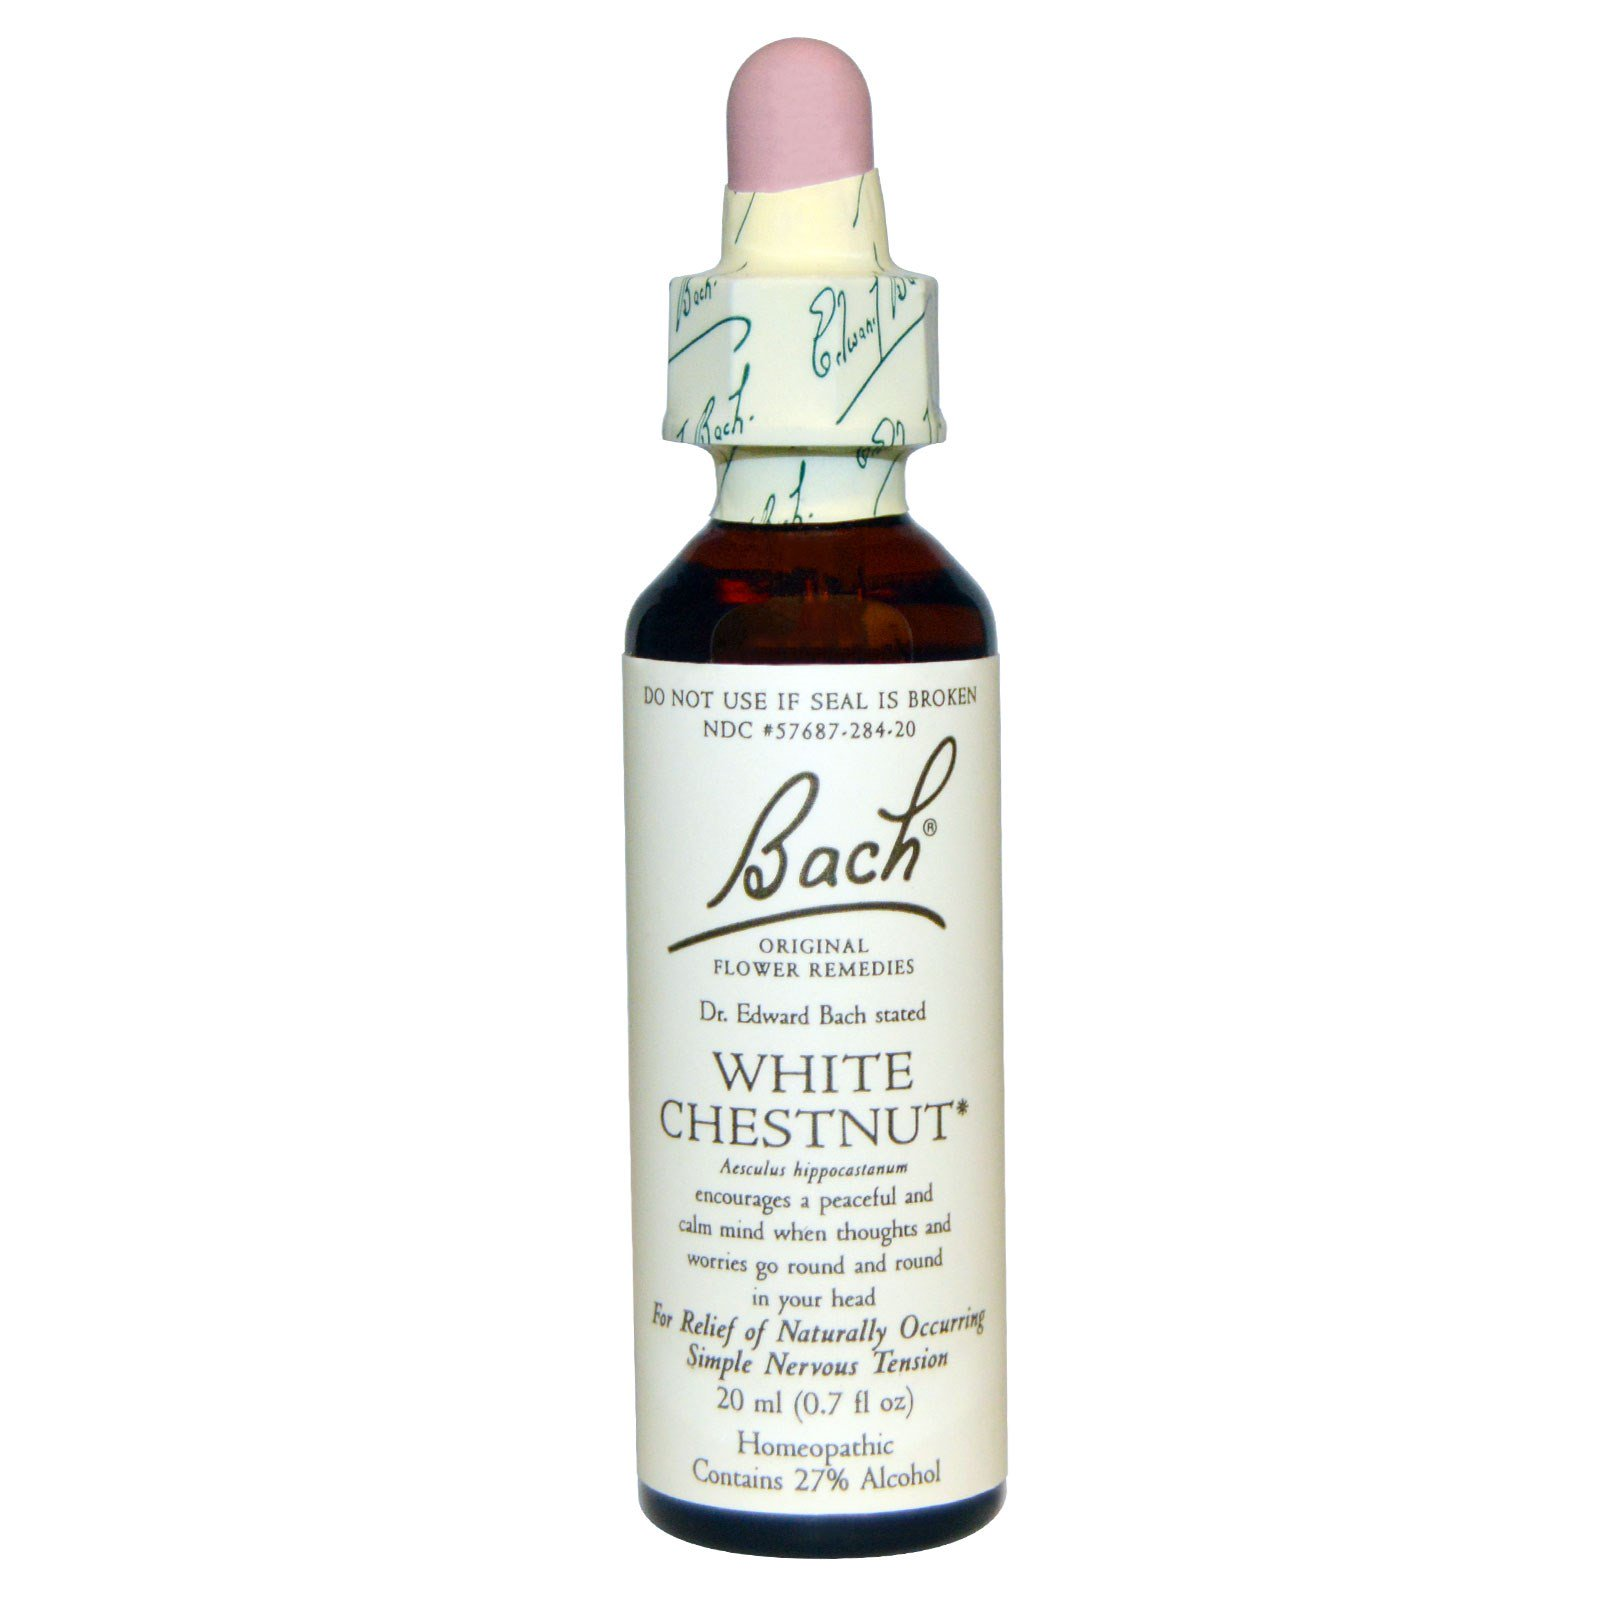 Bach Original Flower Remedies White Chestnut 07 Fl Oz 20 Ml